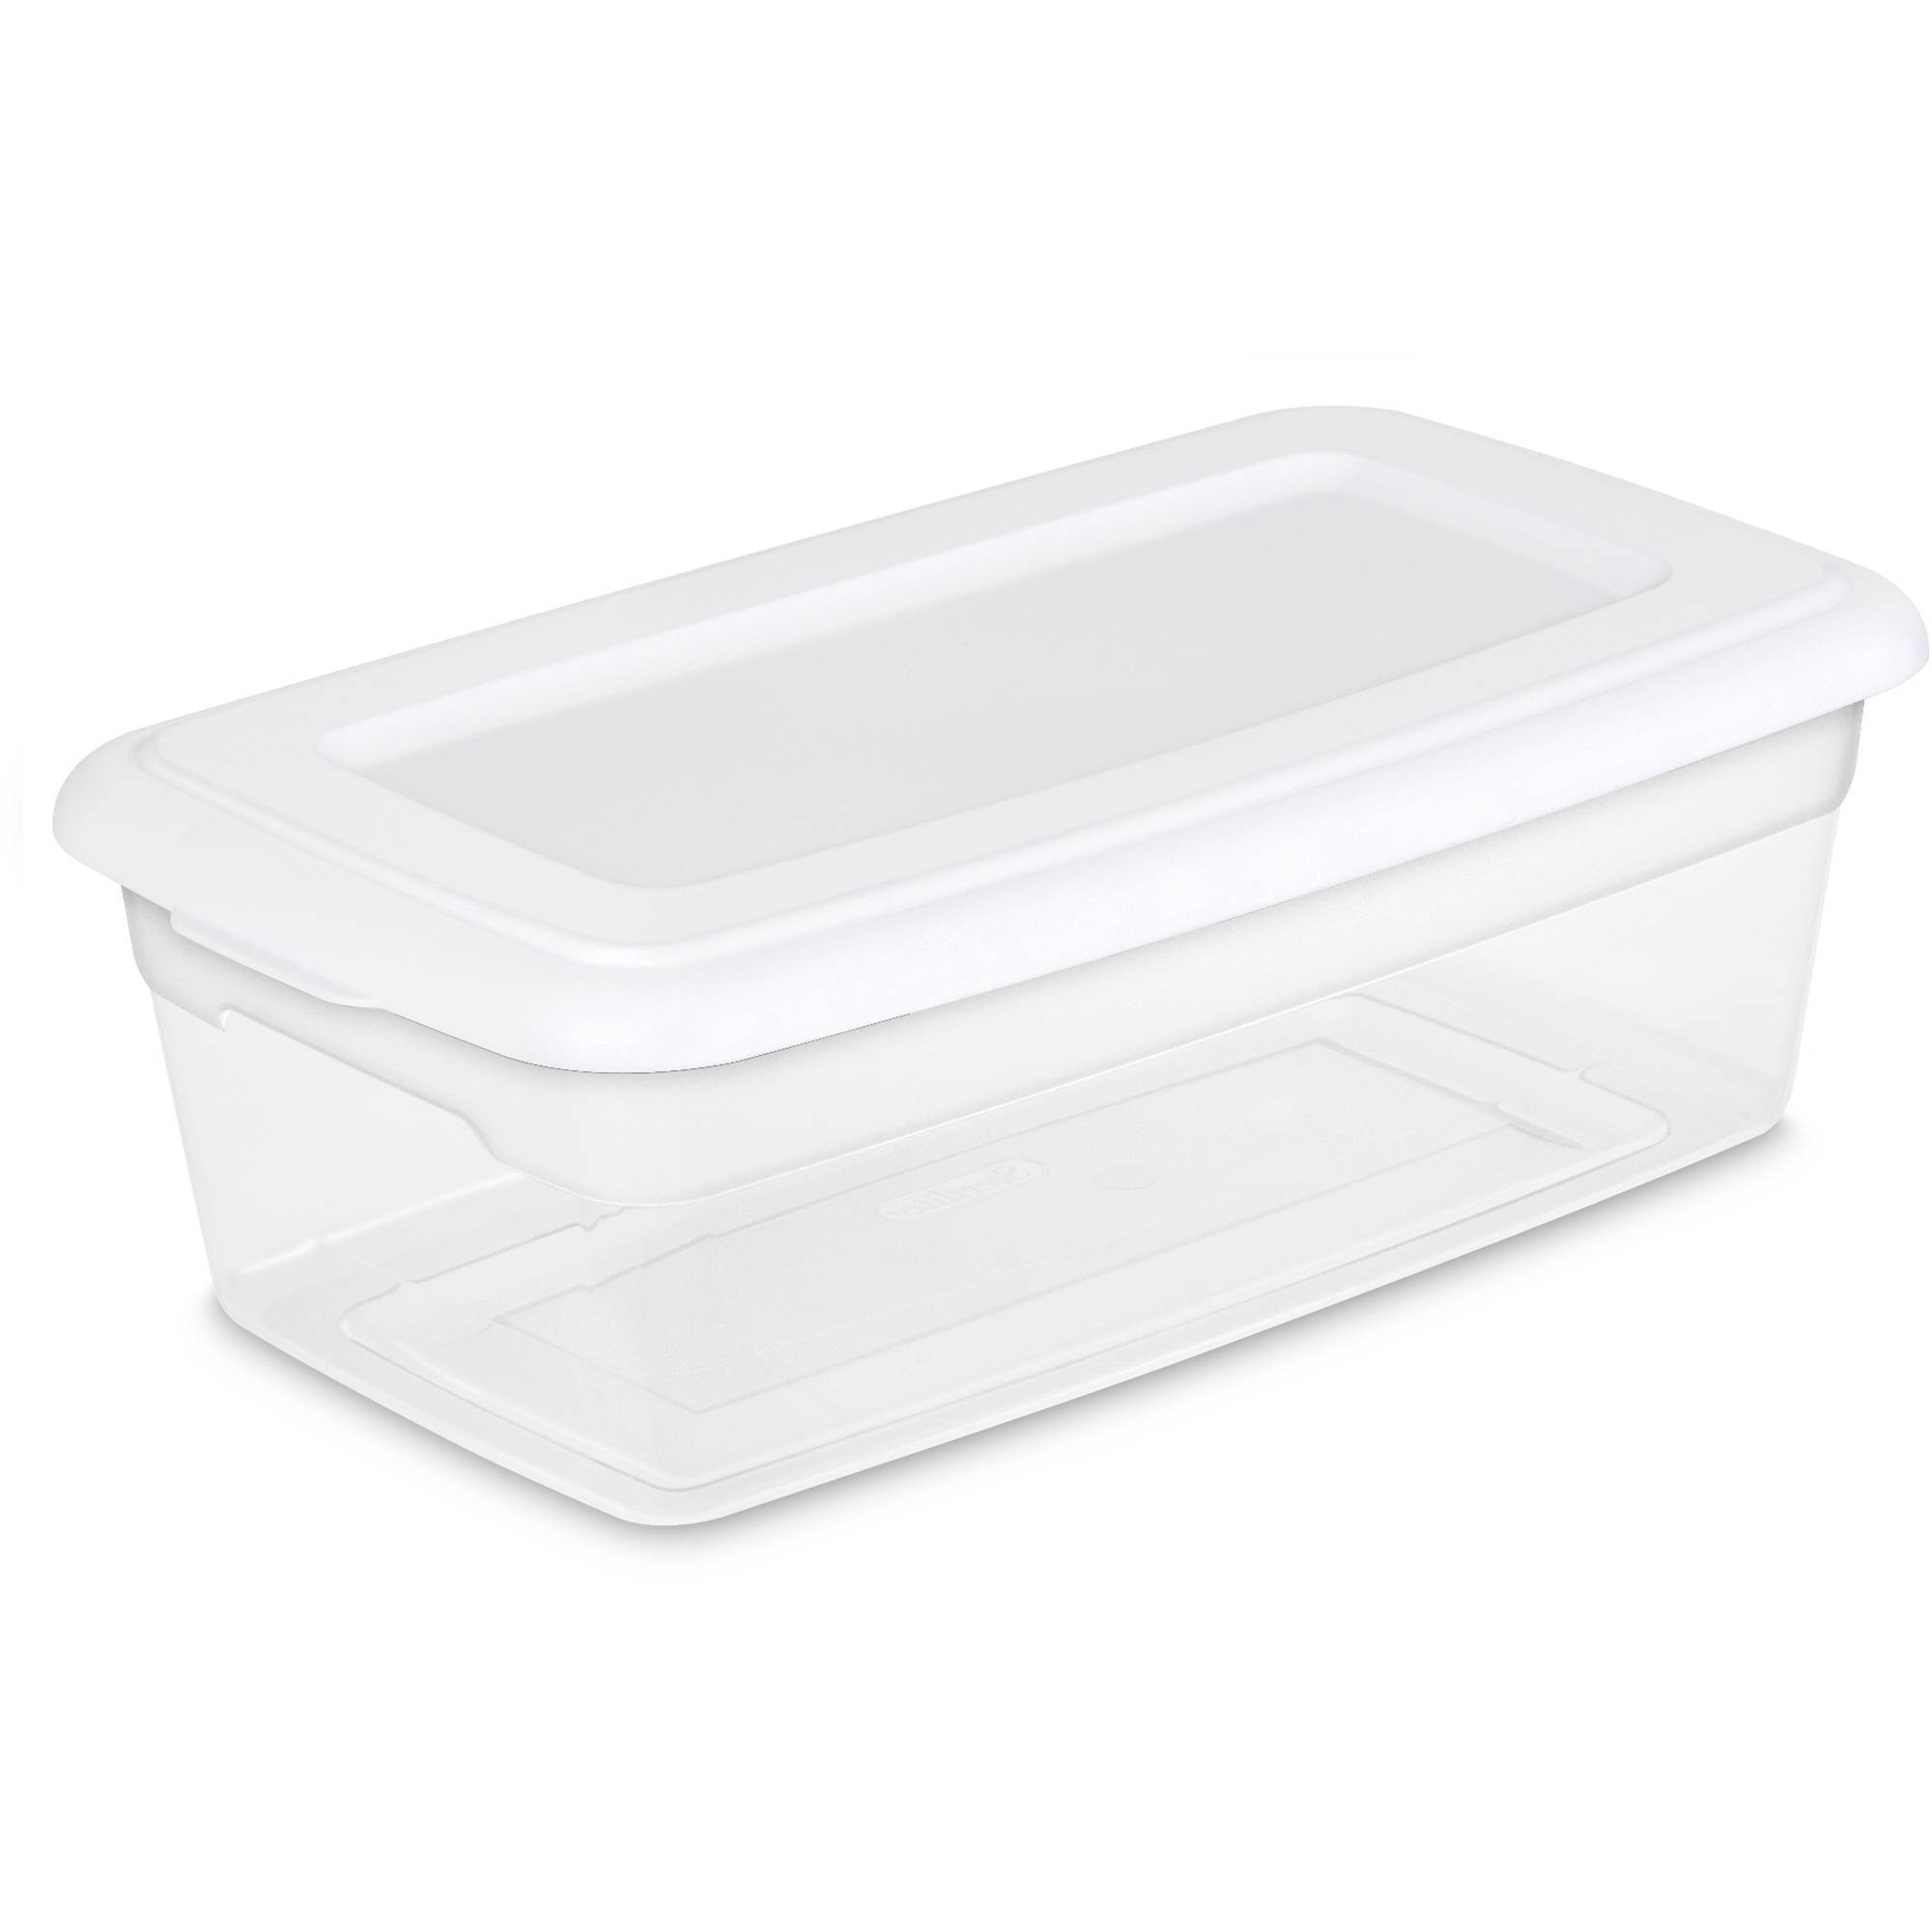 Sterilite 6 Quart Storage Box- White (Available in Case of 36 or Single Unit)